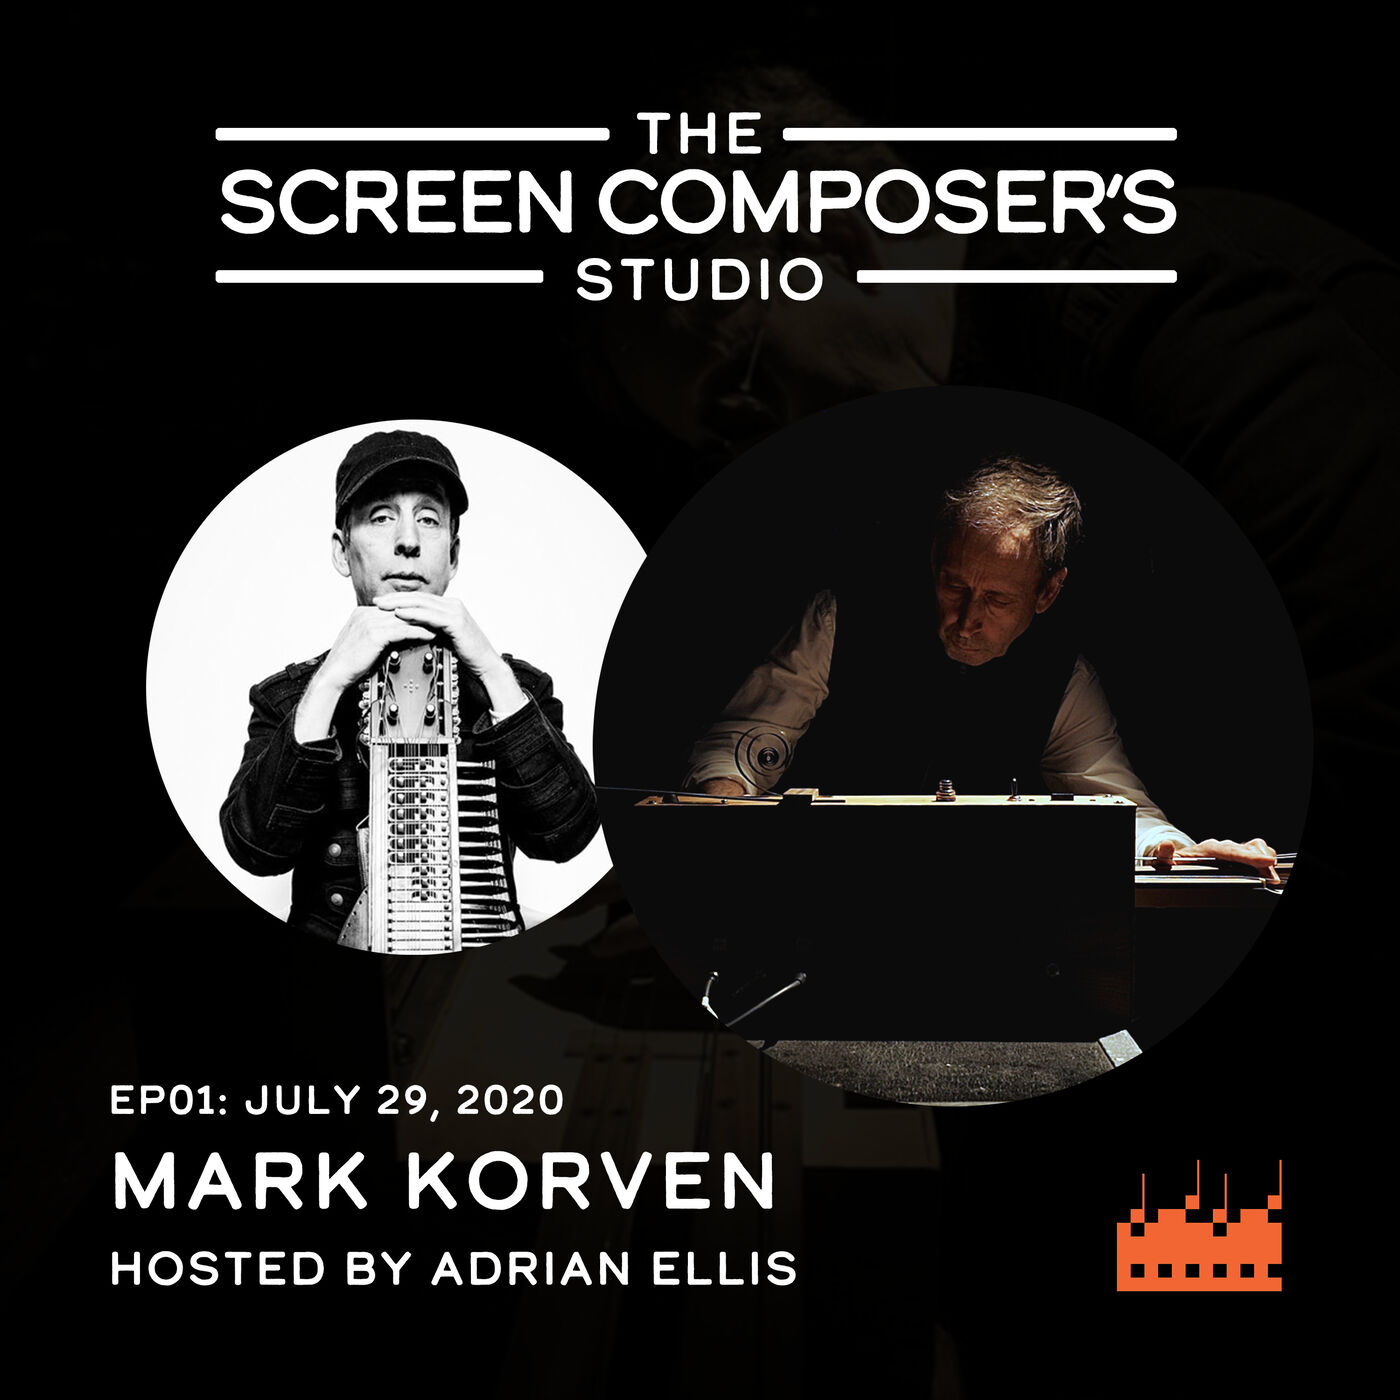 Mark Korven - The Innovator